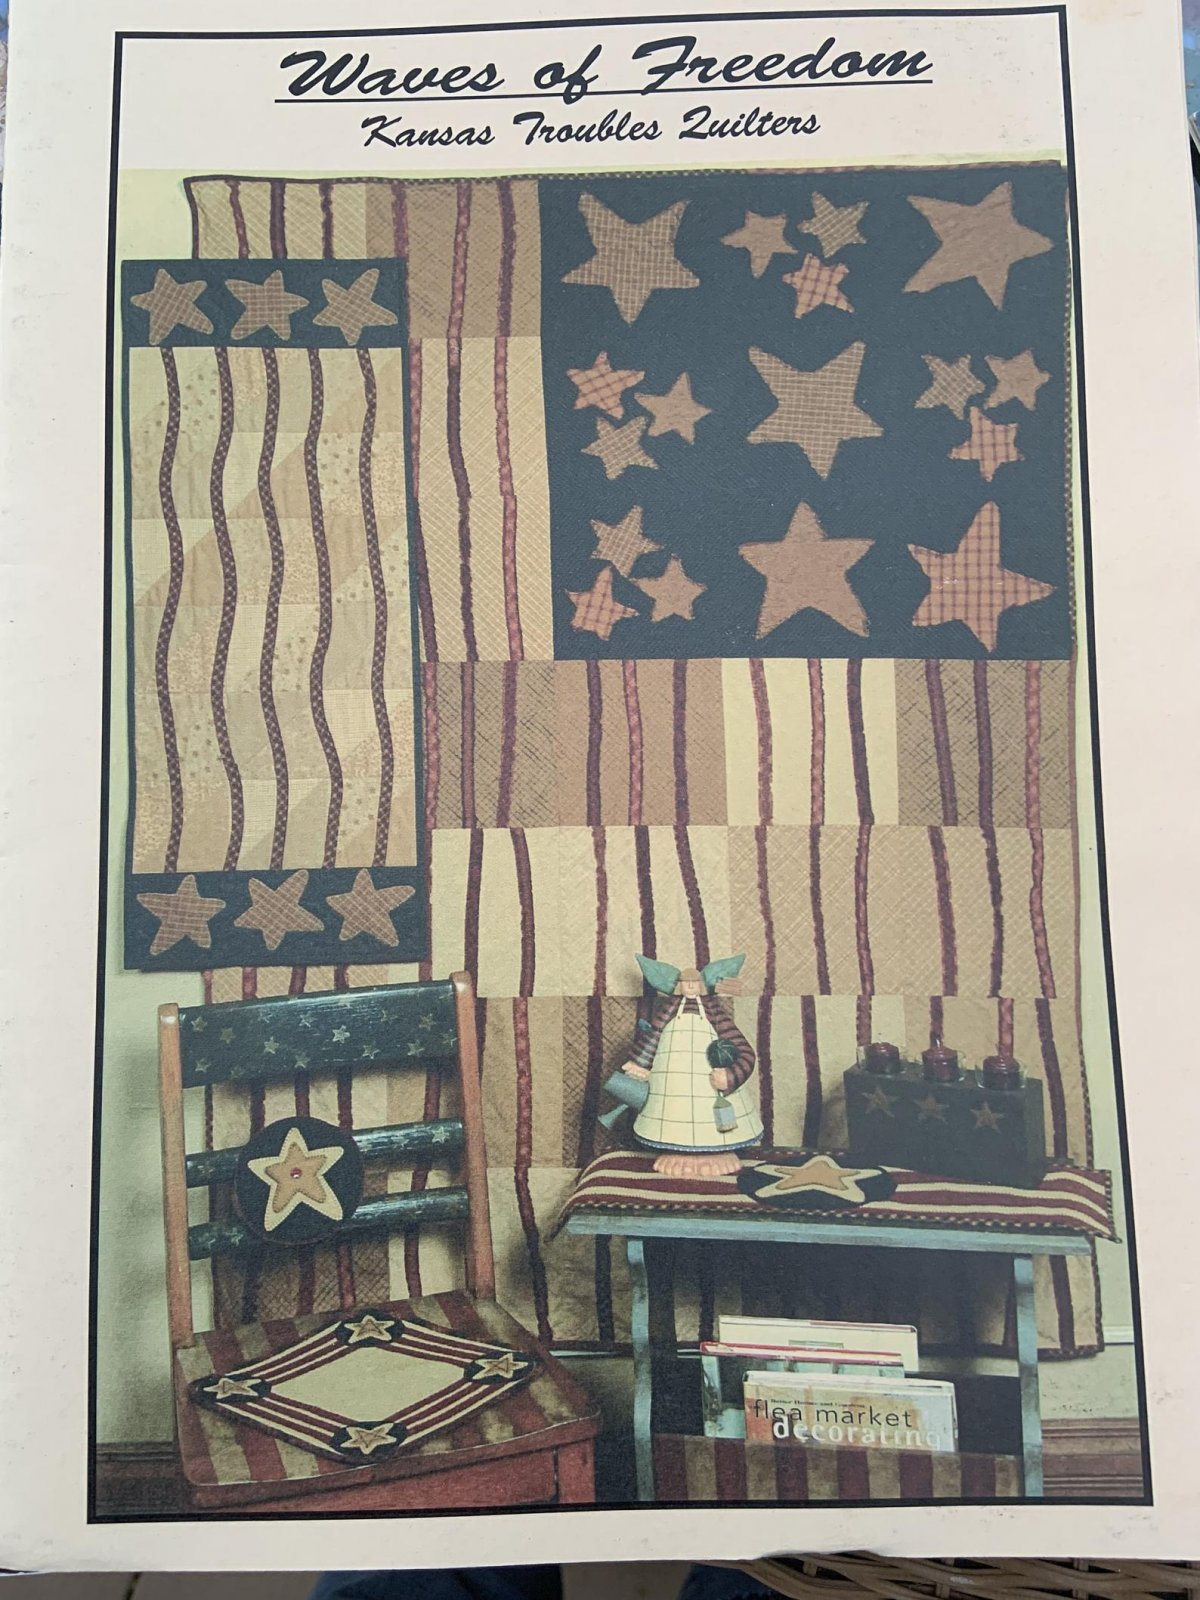 Waves of Freedom Kansas Troubles Quilters